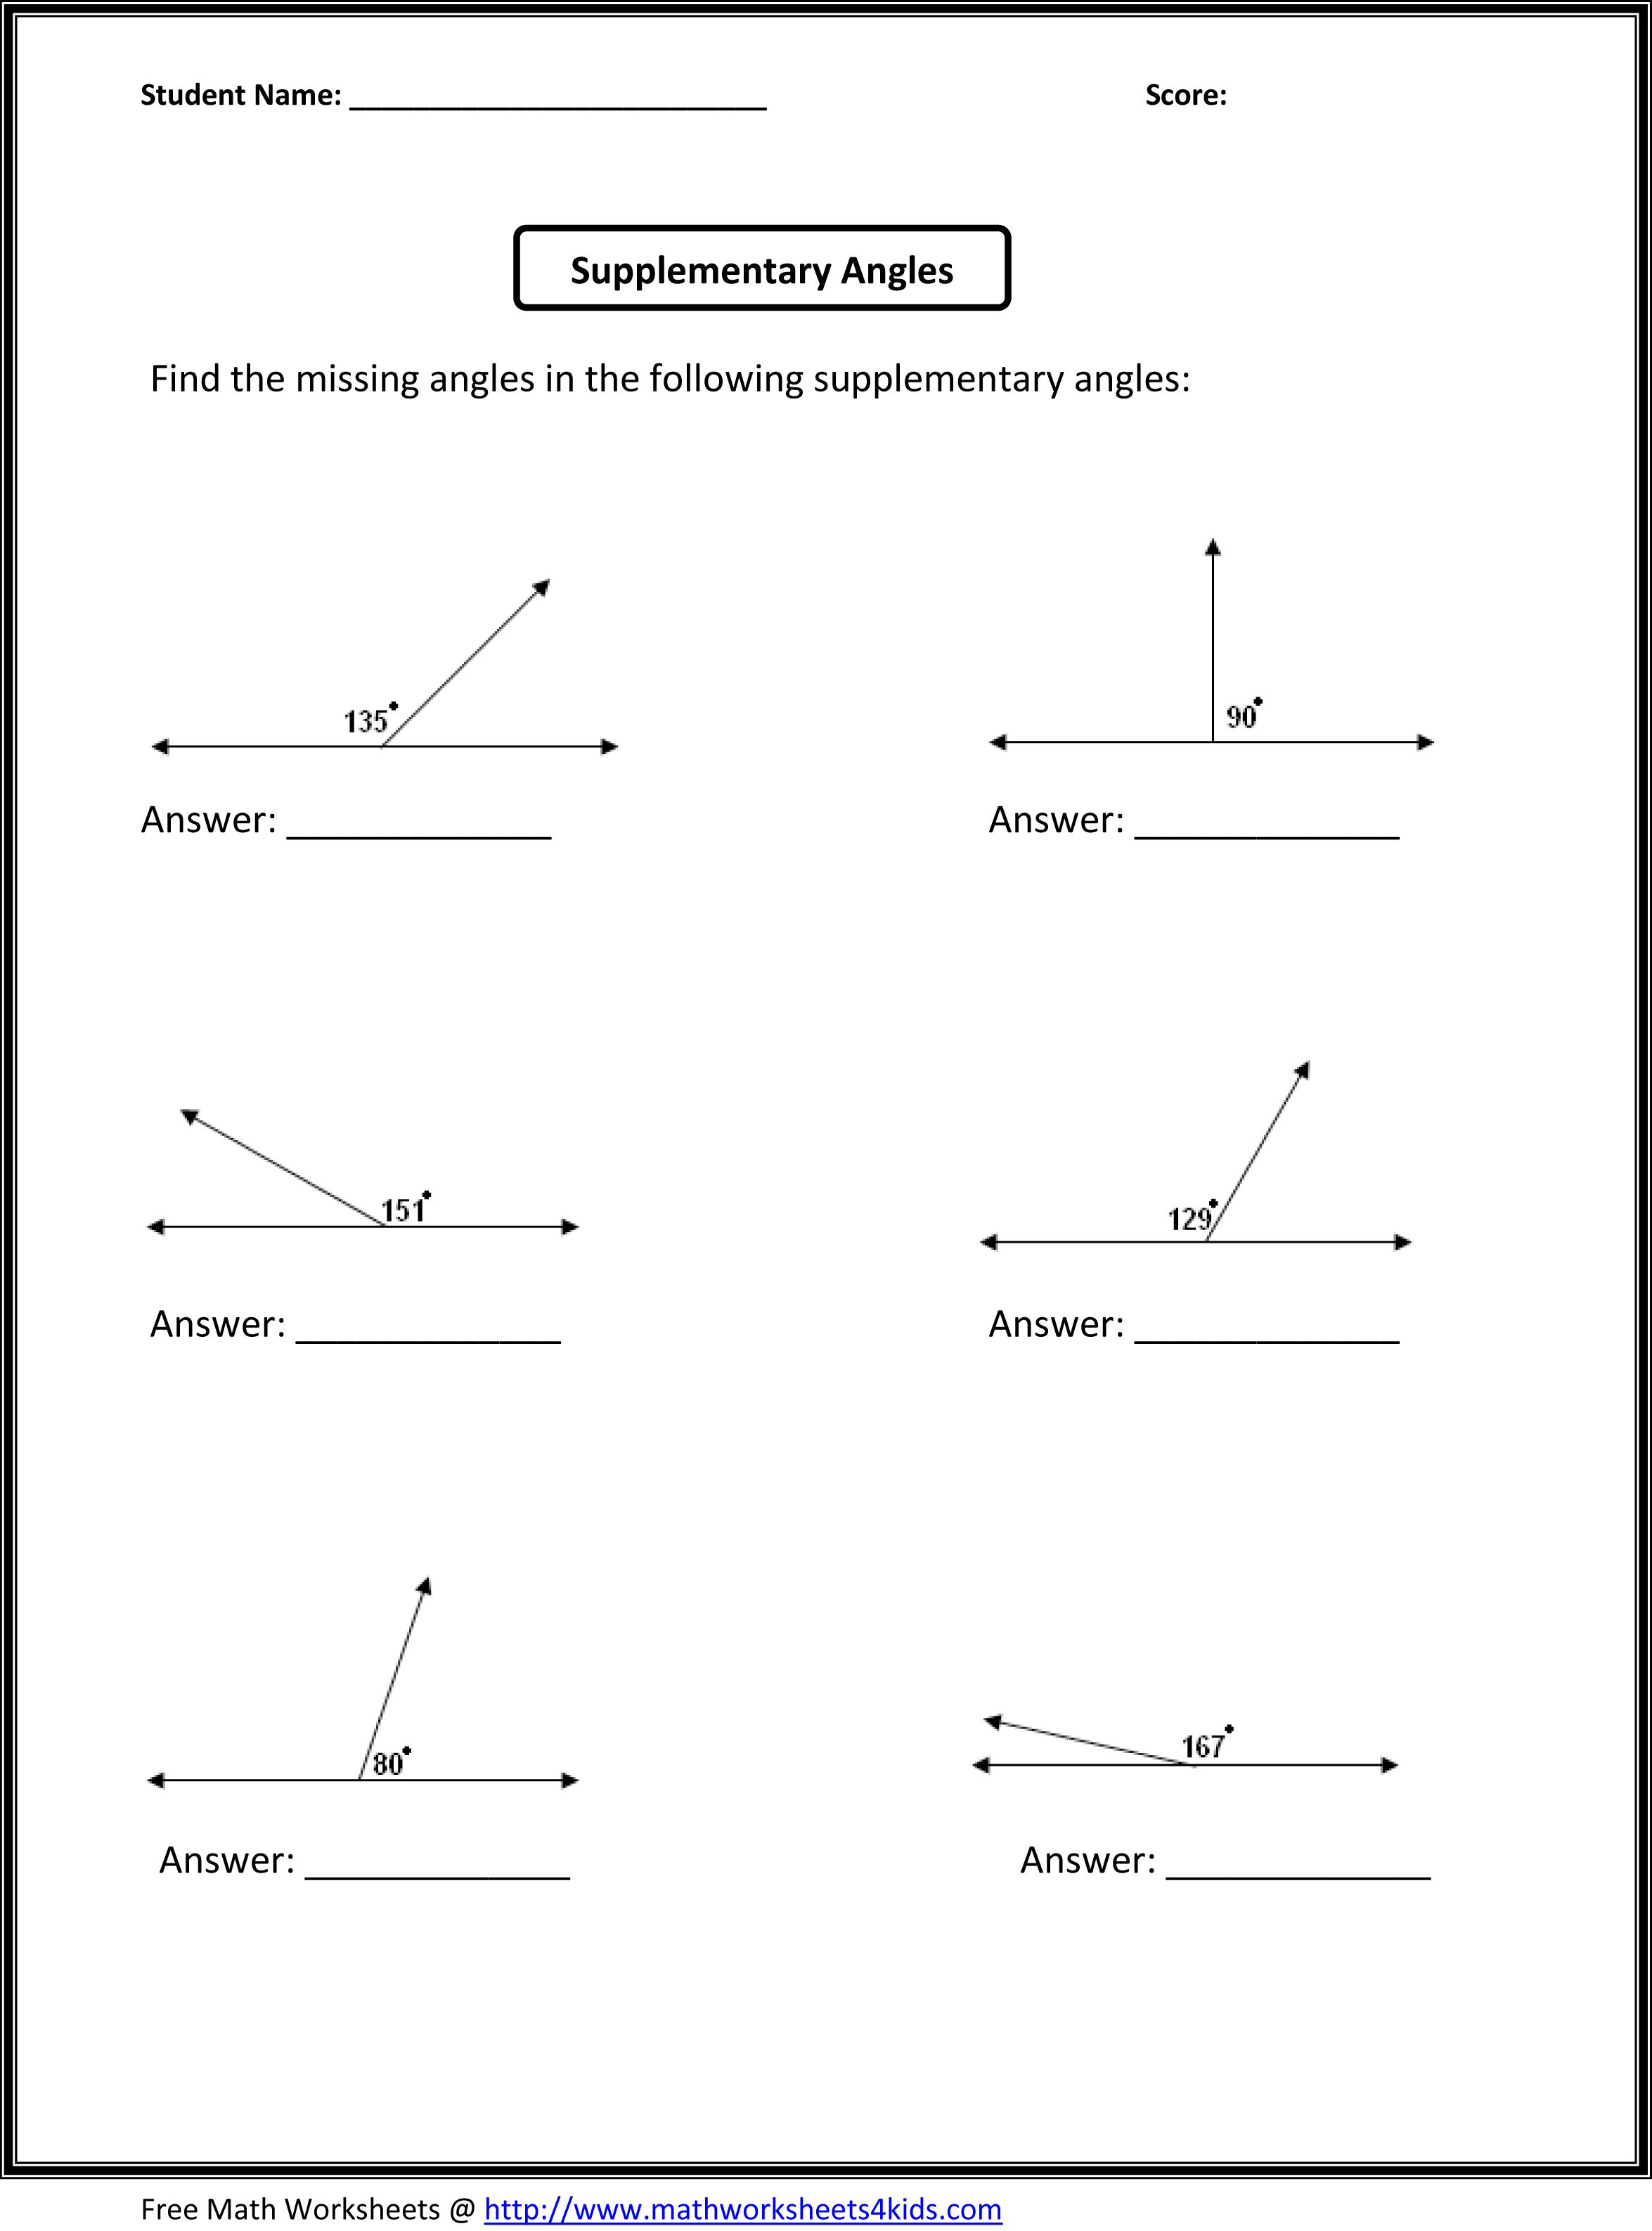 Worksheets Math Worksheets 8th Grade Pre Algebra supplementary angles classroom madness pinterest math sixth grade worksheets